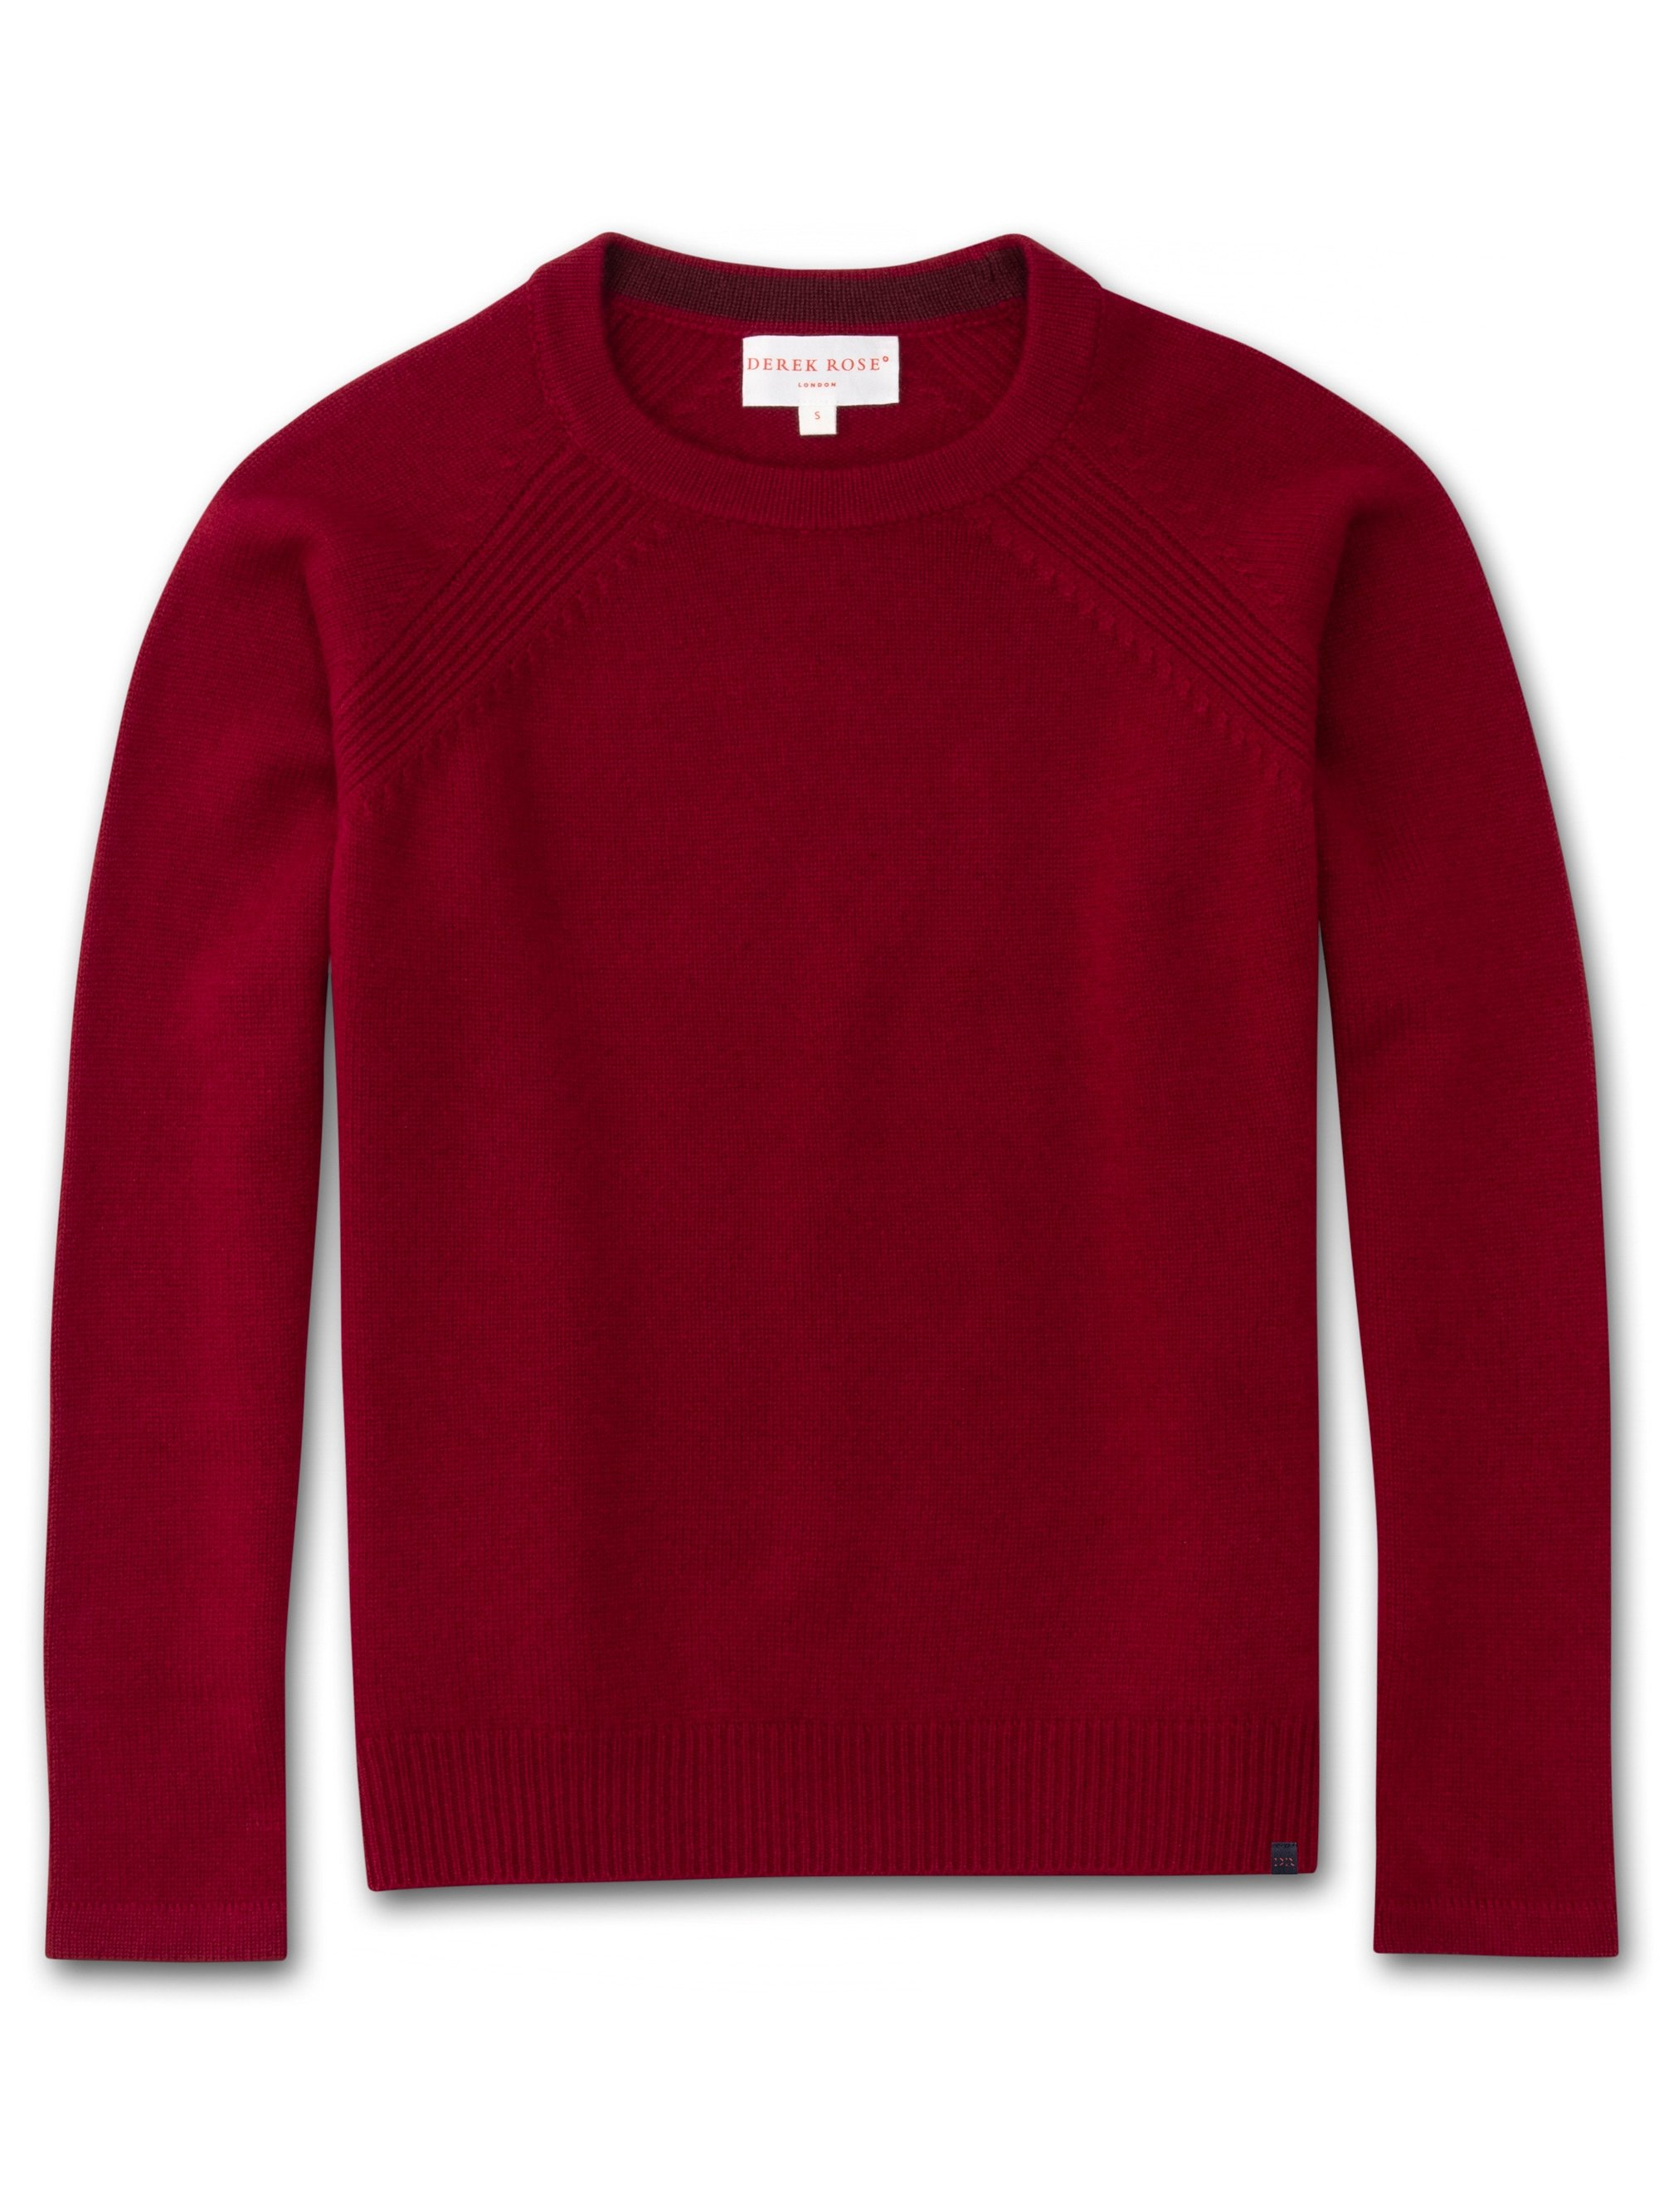 Women's Cashmere Sweater Daphne Pure Cashmere Crimson